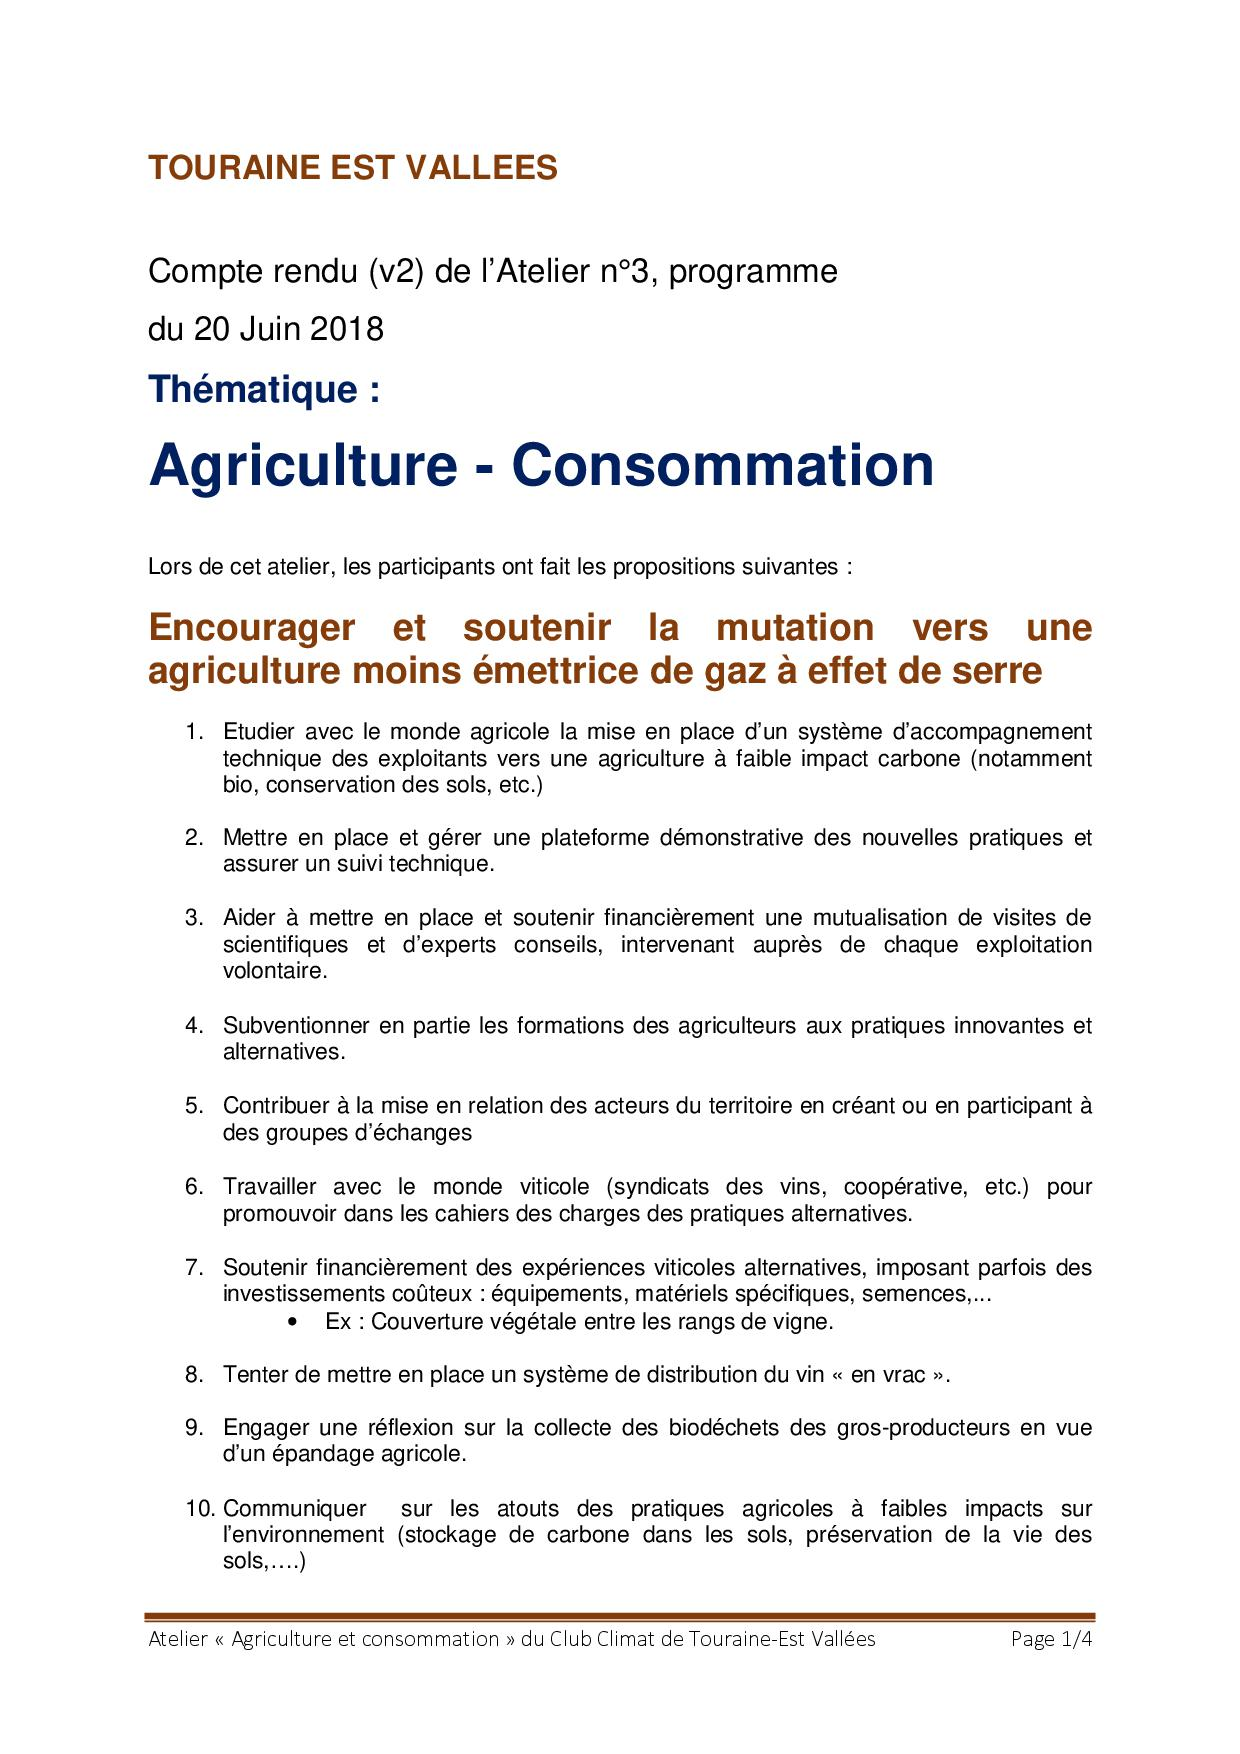 CR_Atelier_3_Agriculture_consommation_v21